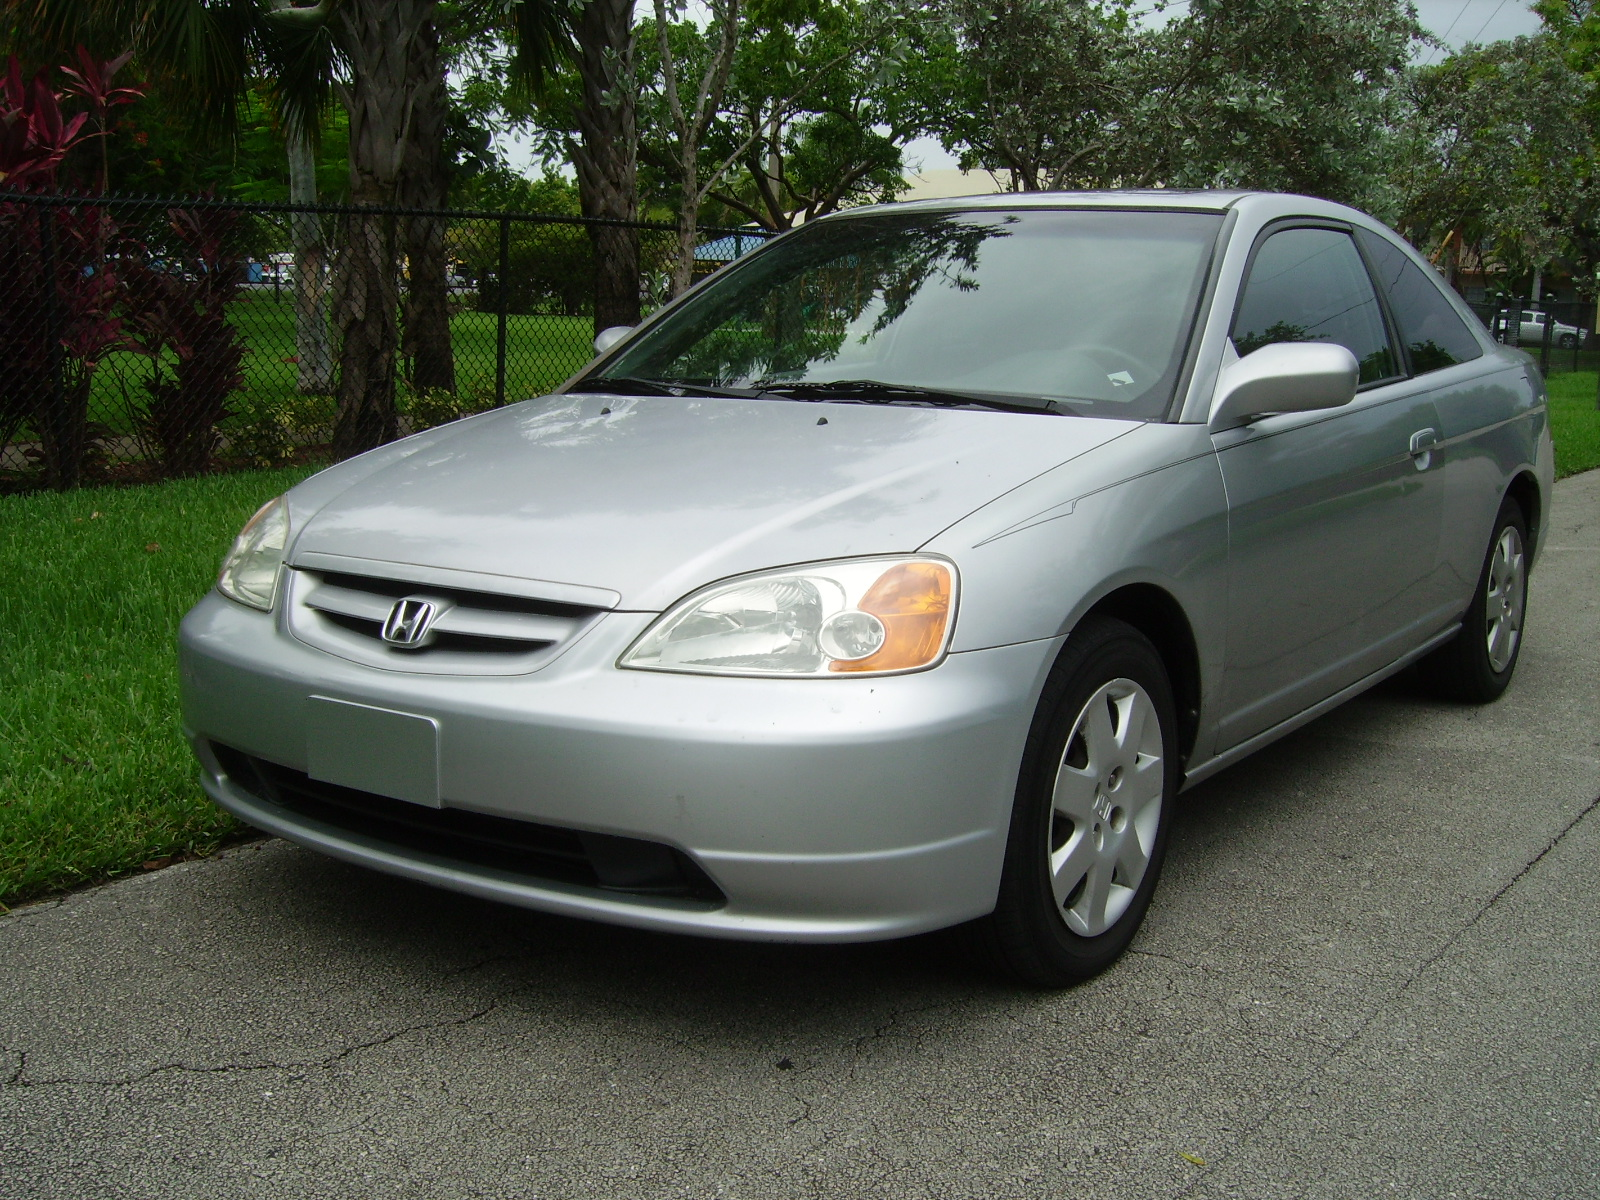 Picture of 2001 honda civic ex coupe exterior